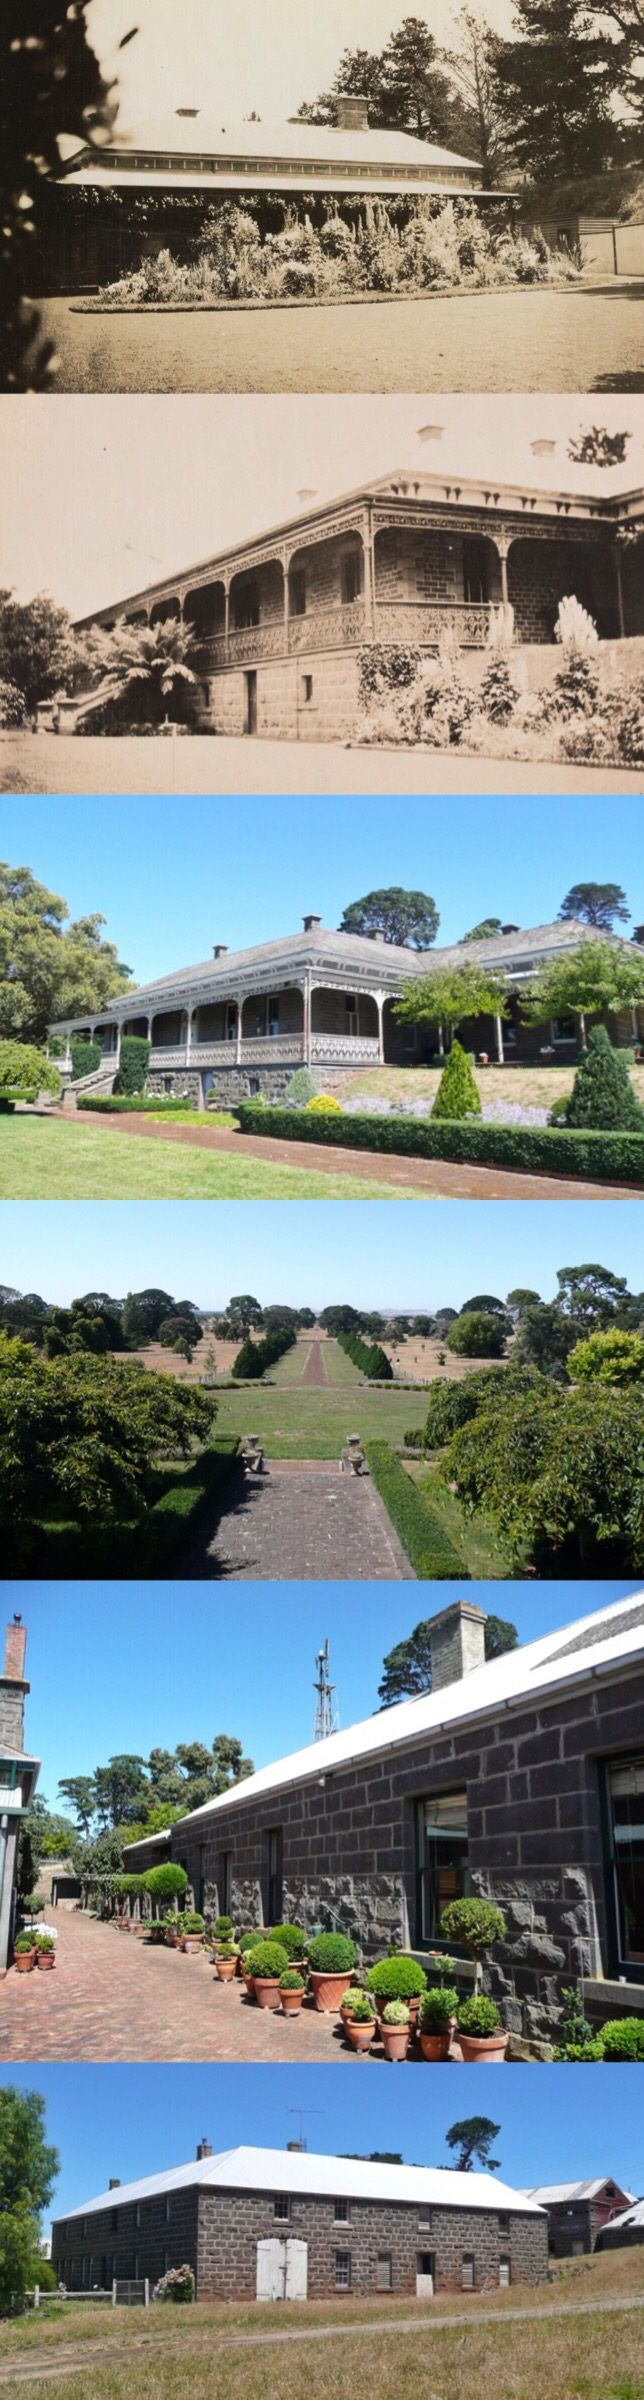 Meningoort Homestead, Bookaar (190km W of Melbourne). Original run taken up by Peter McArthur & Nicholas Cole 1839, divided 1842 into Meningoort (McArthur) and West Cloven Hills (Cole); their families still own both properties. In 1851 McArthur built a stone house and outbuildings on the slopes of an extinct volcano; in 1886 it was integrated into a large bluestone Italianate homestead by Melbourne architect Charles D'Ebro. It has been meticulously maintained in near 1880s condition.